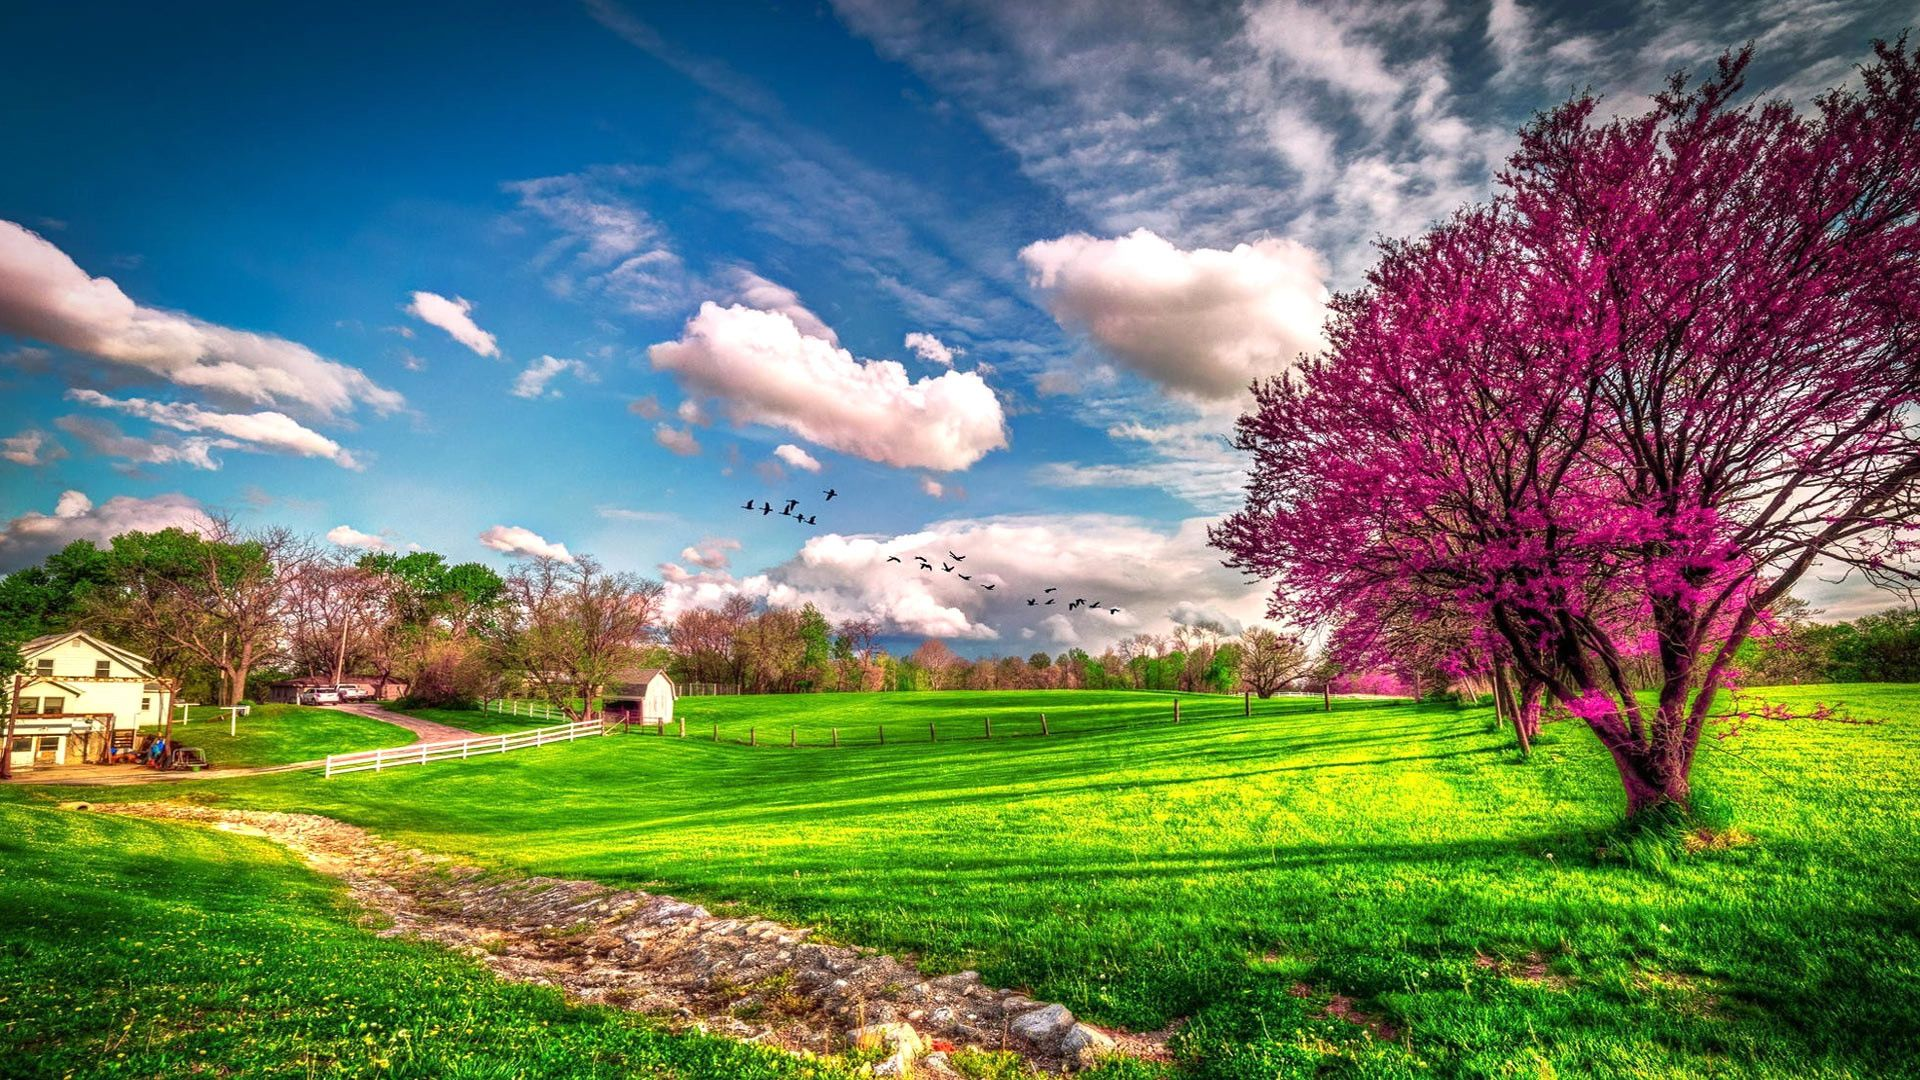 Landscape beautiful spring nature   Spring Wallpapers 1920x1080